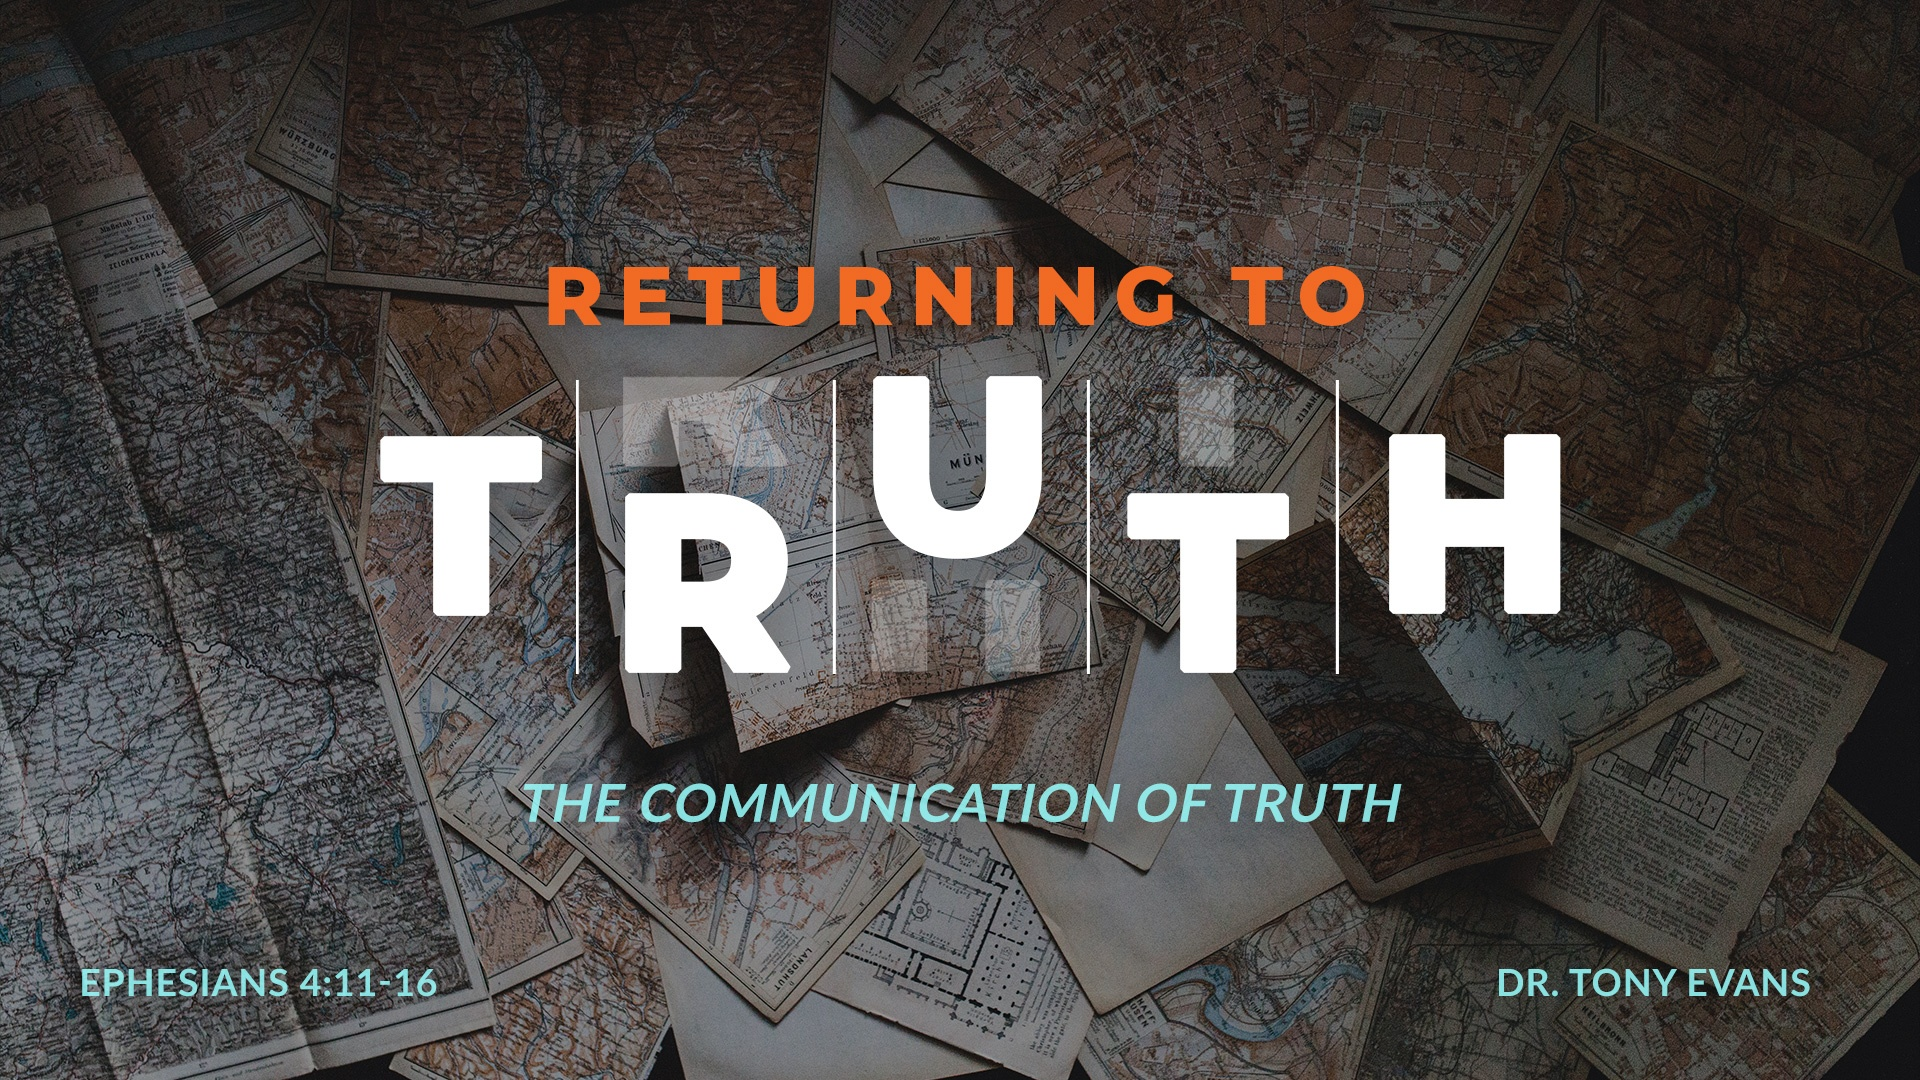 Returning to Truth: The Communication of Truth by Dr. Tony Evans